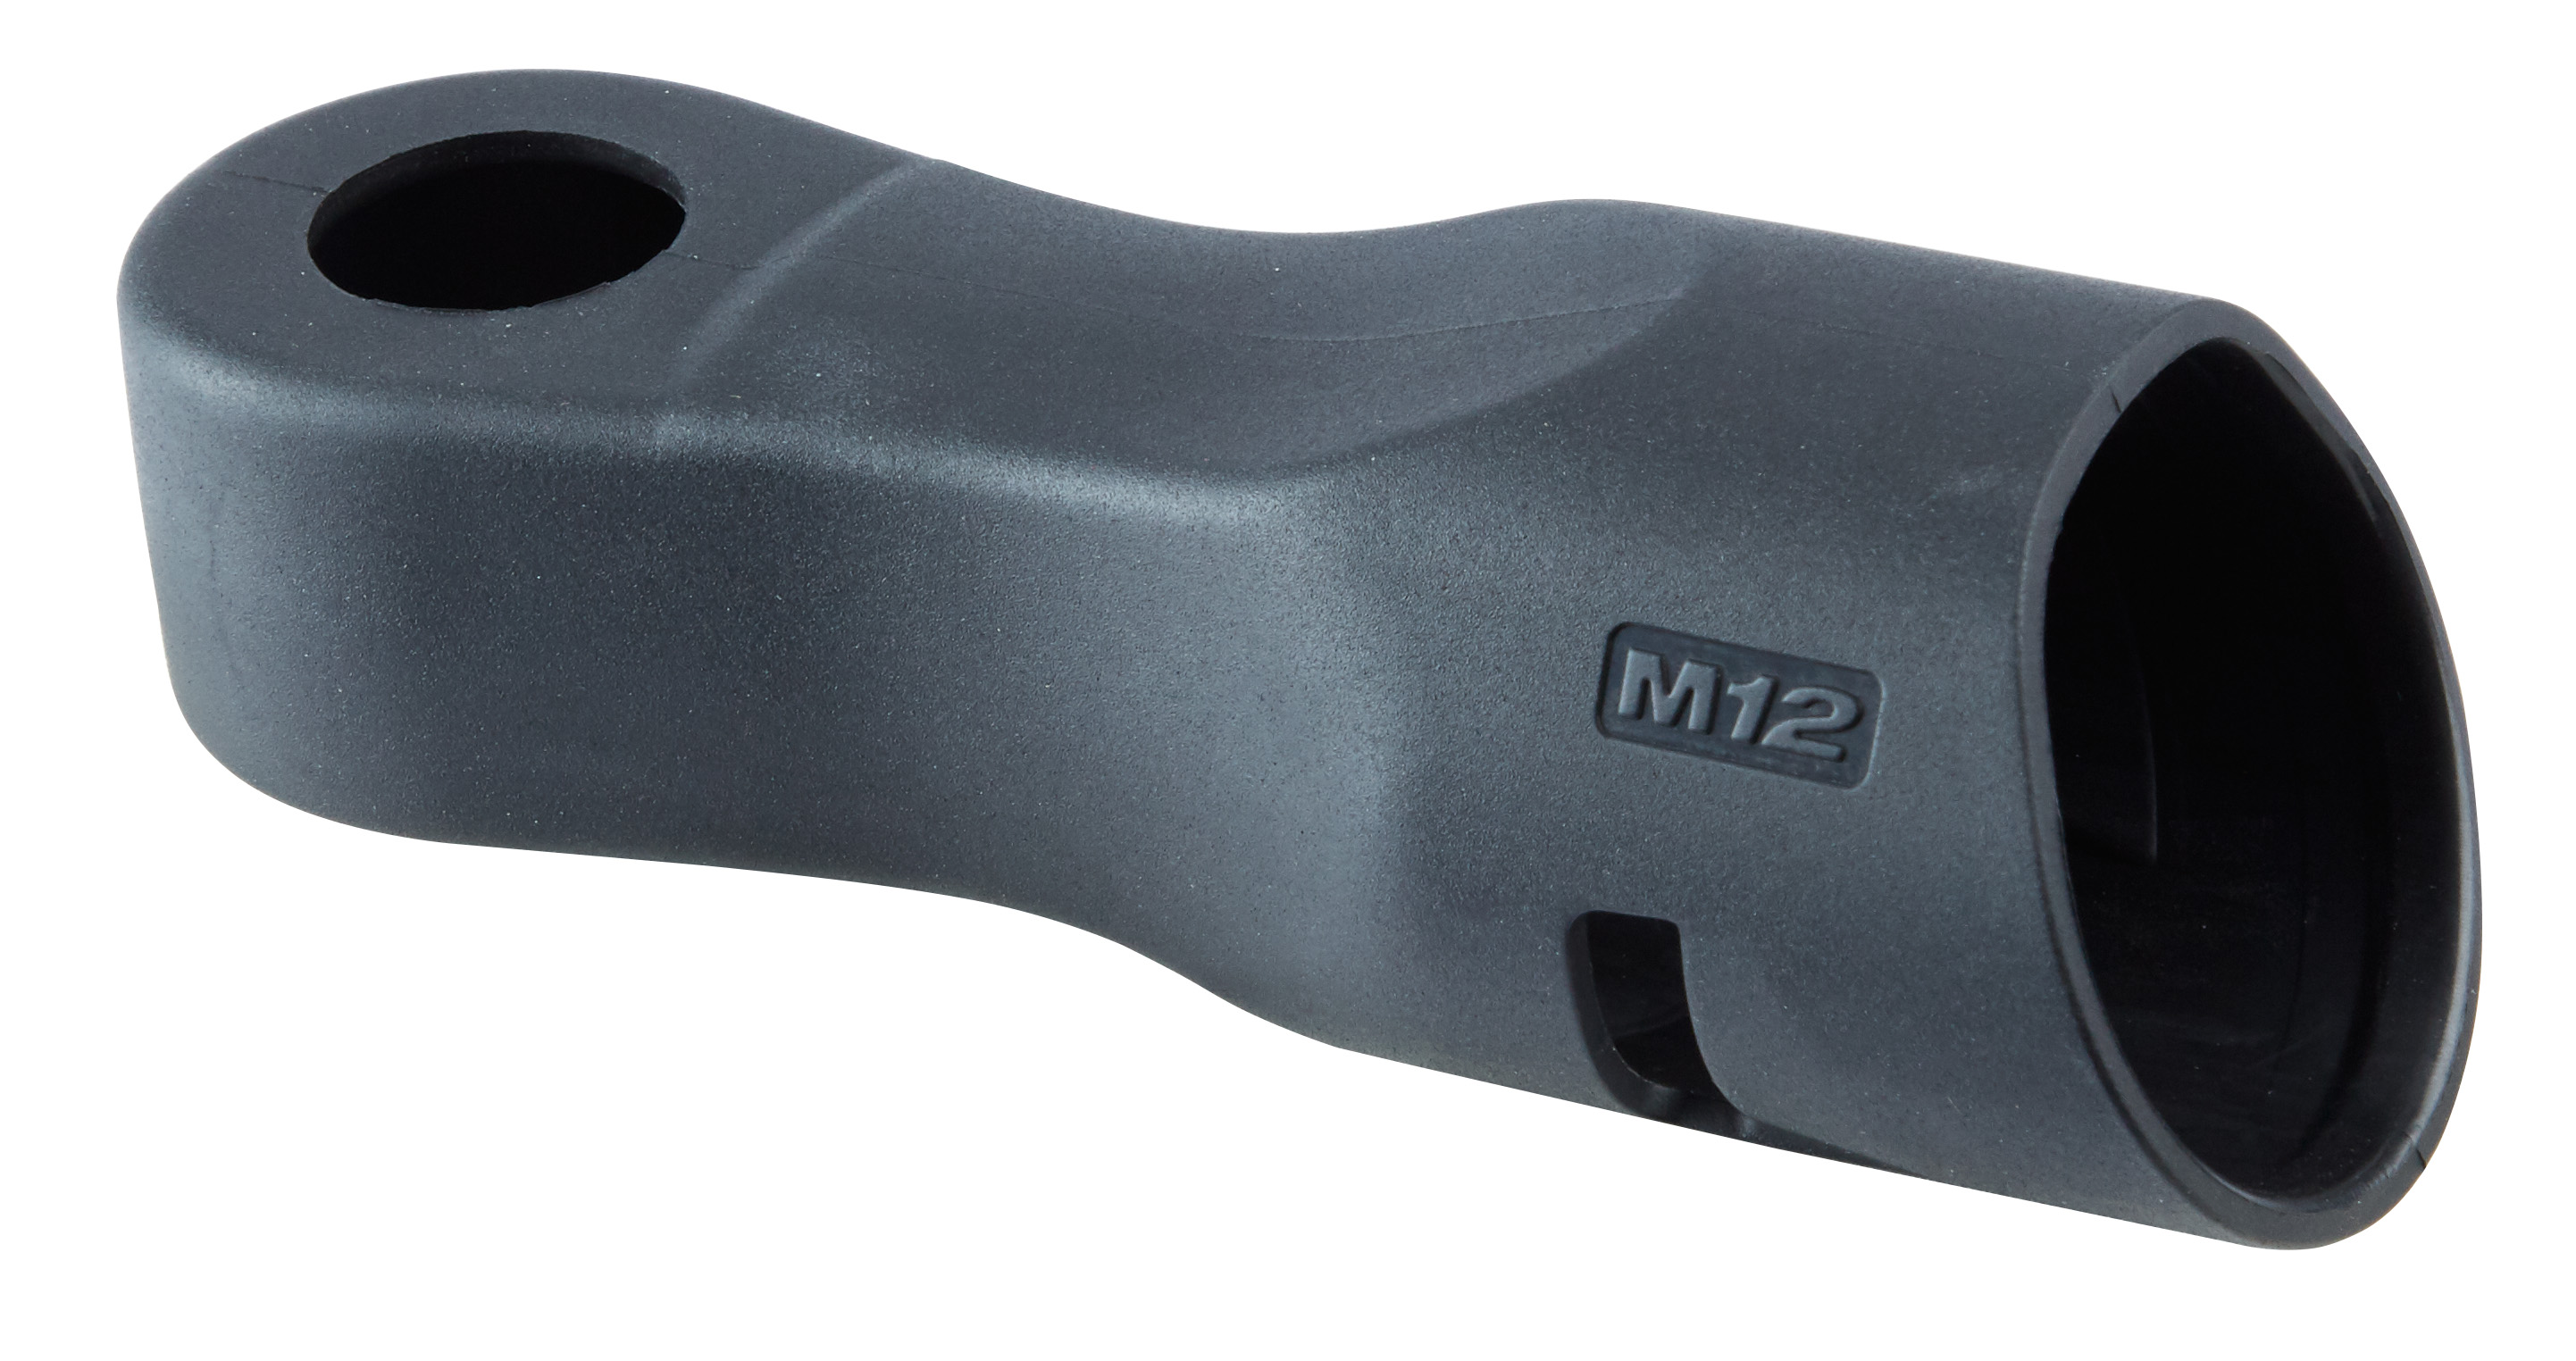 Milwaukee® M12™ FUEL™ 49-16-2558 Ratchet Protective Tool Boot, For Use With M12 FUEL™ 2558-20 Serial J20A 1/2 in Ratchet, 1/2 in